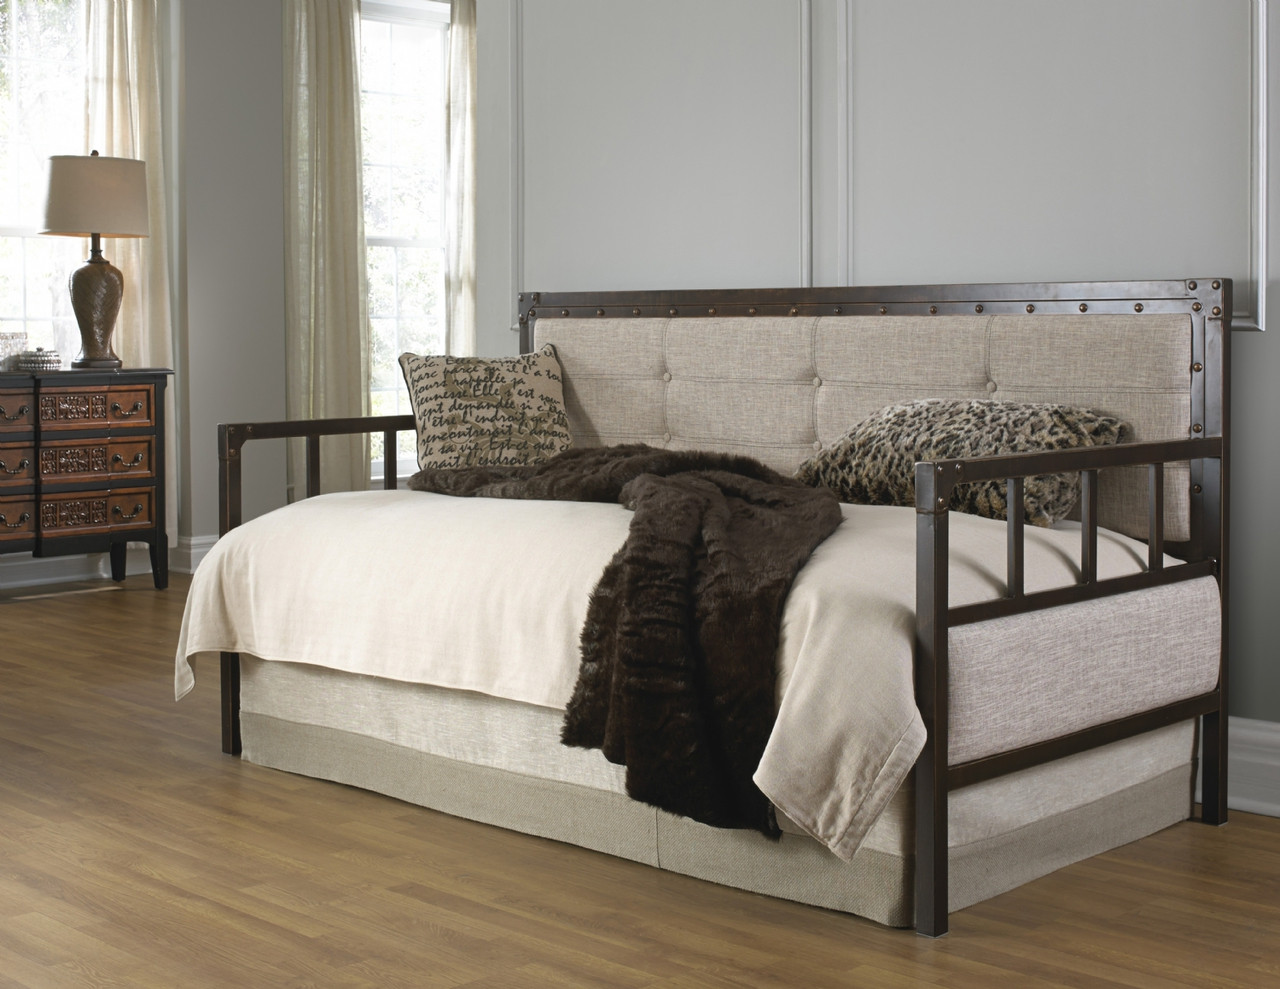 Fashion Bed Group Gotham Metal Upholstered Daybed In